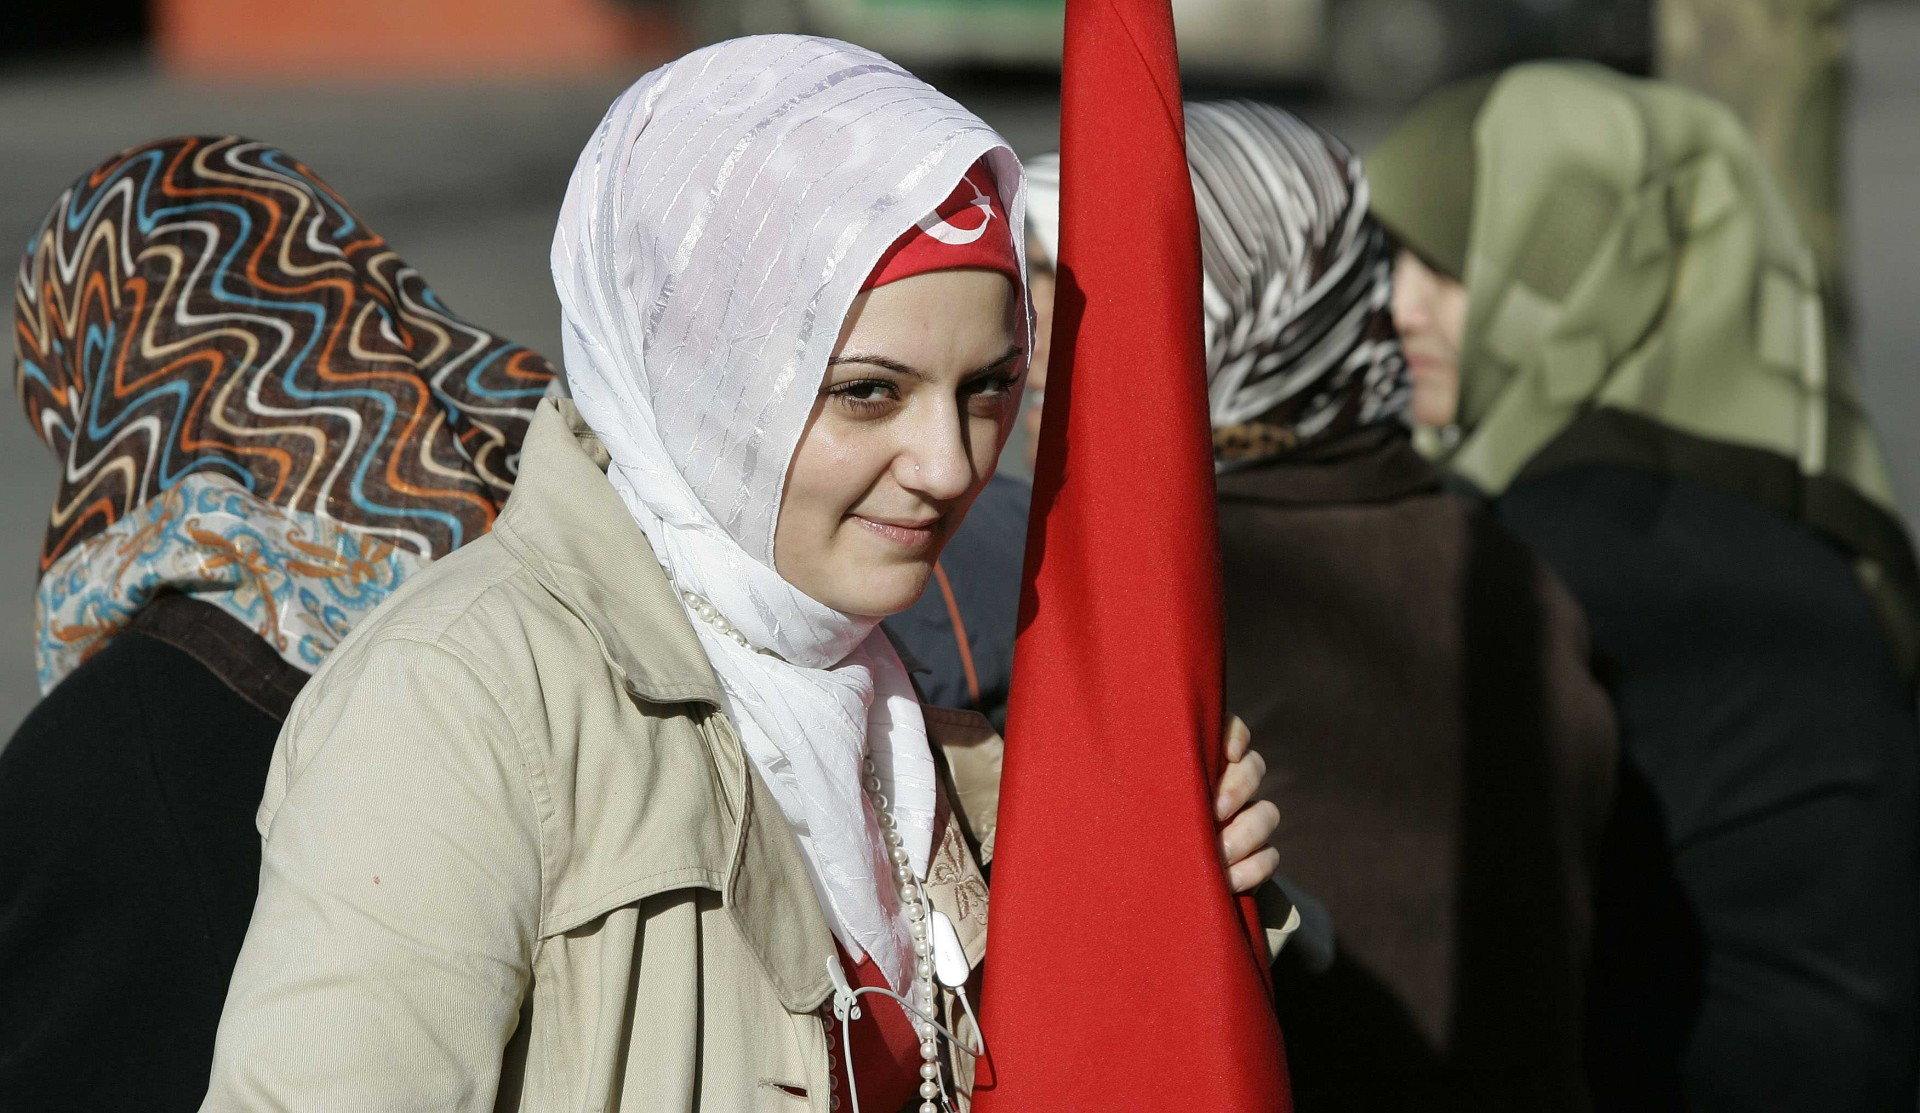 Women from the Turkish community wait for Turkish Prime Minister Tayyip Erdogan to arrive at the Koelnarena in Cologne